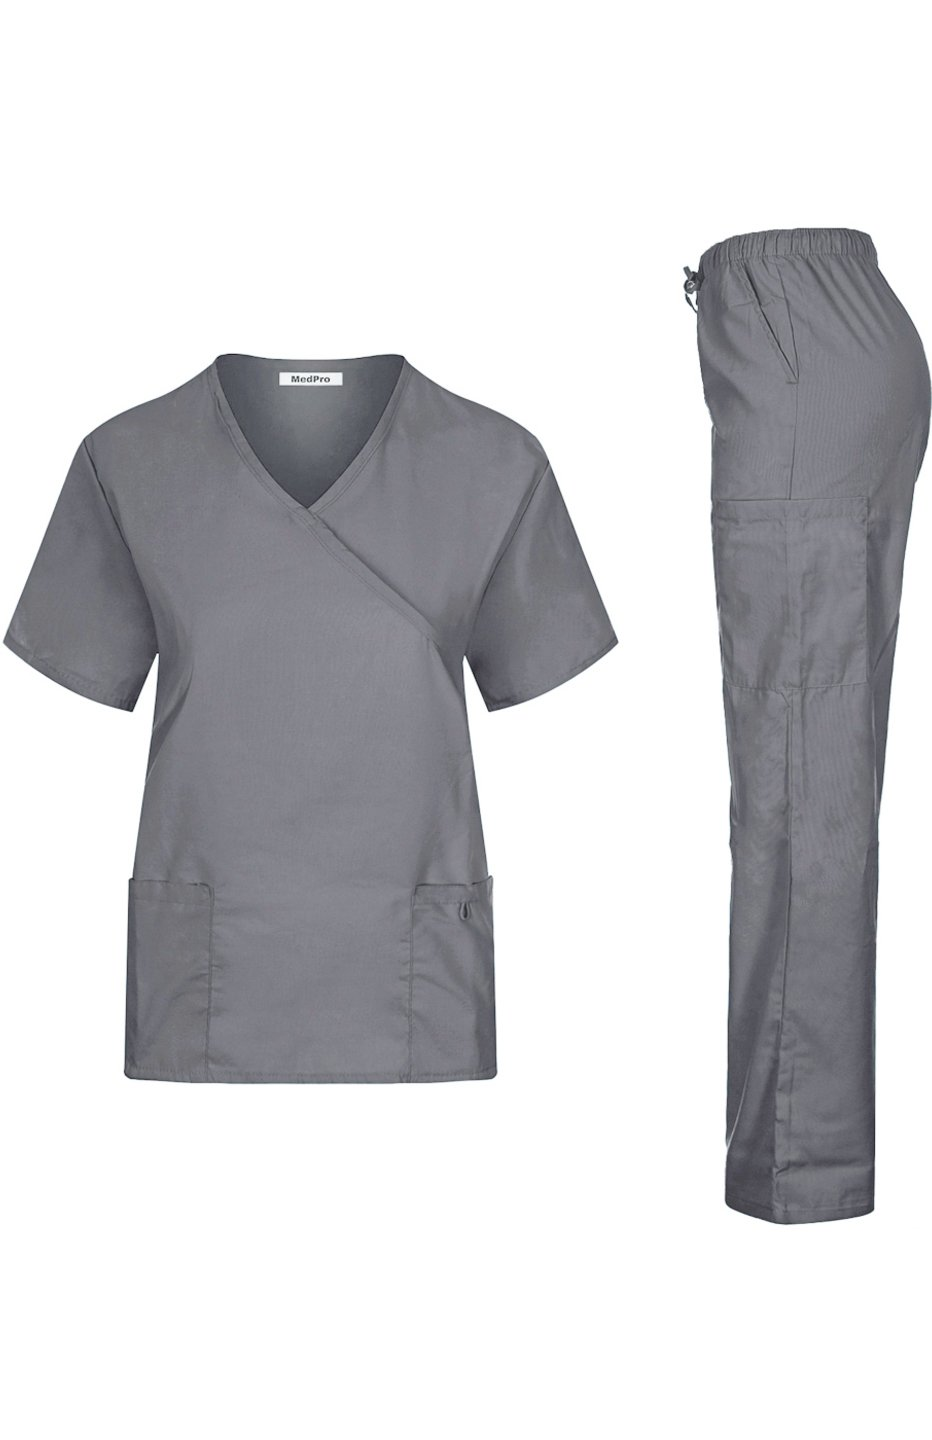 MedPro Women's Solid Medical Scrub Set Mock Wrap Top and Cargo Pants Light Grey S